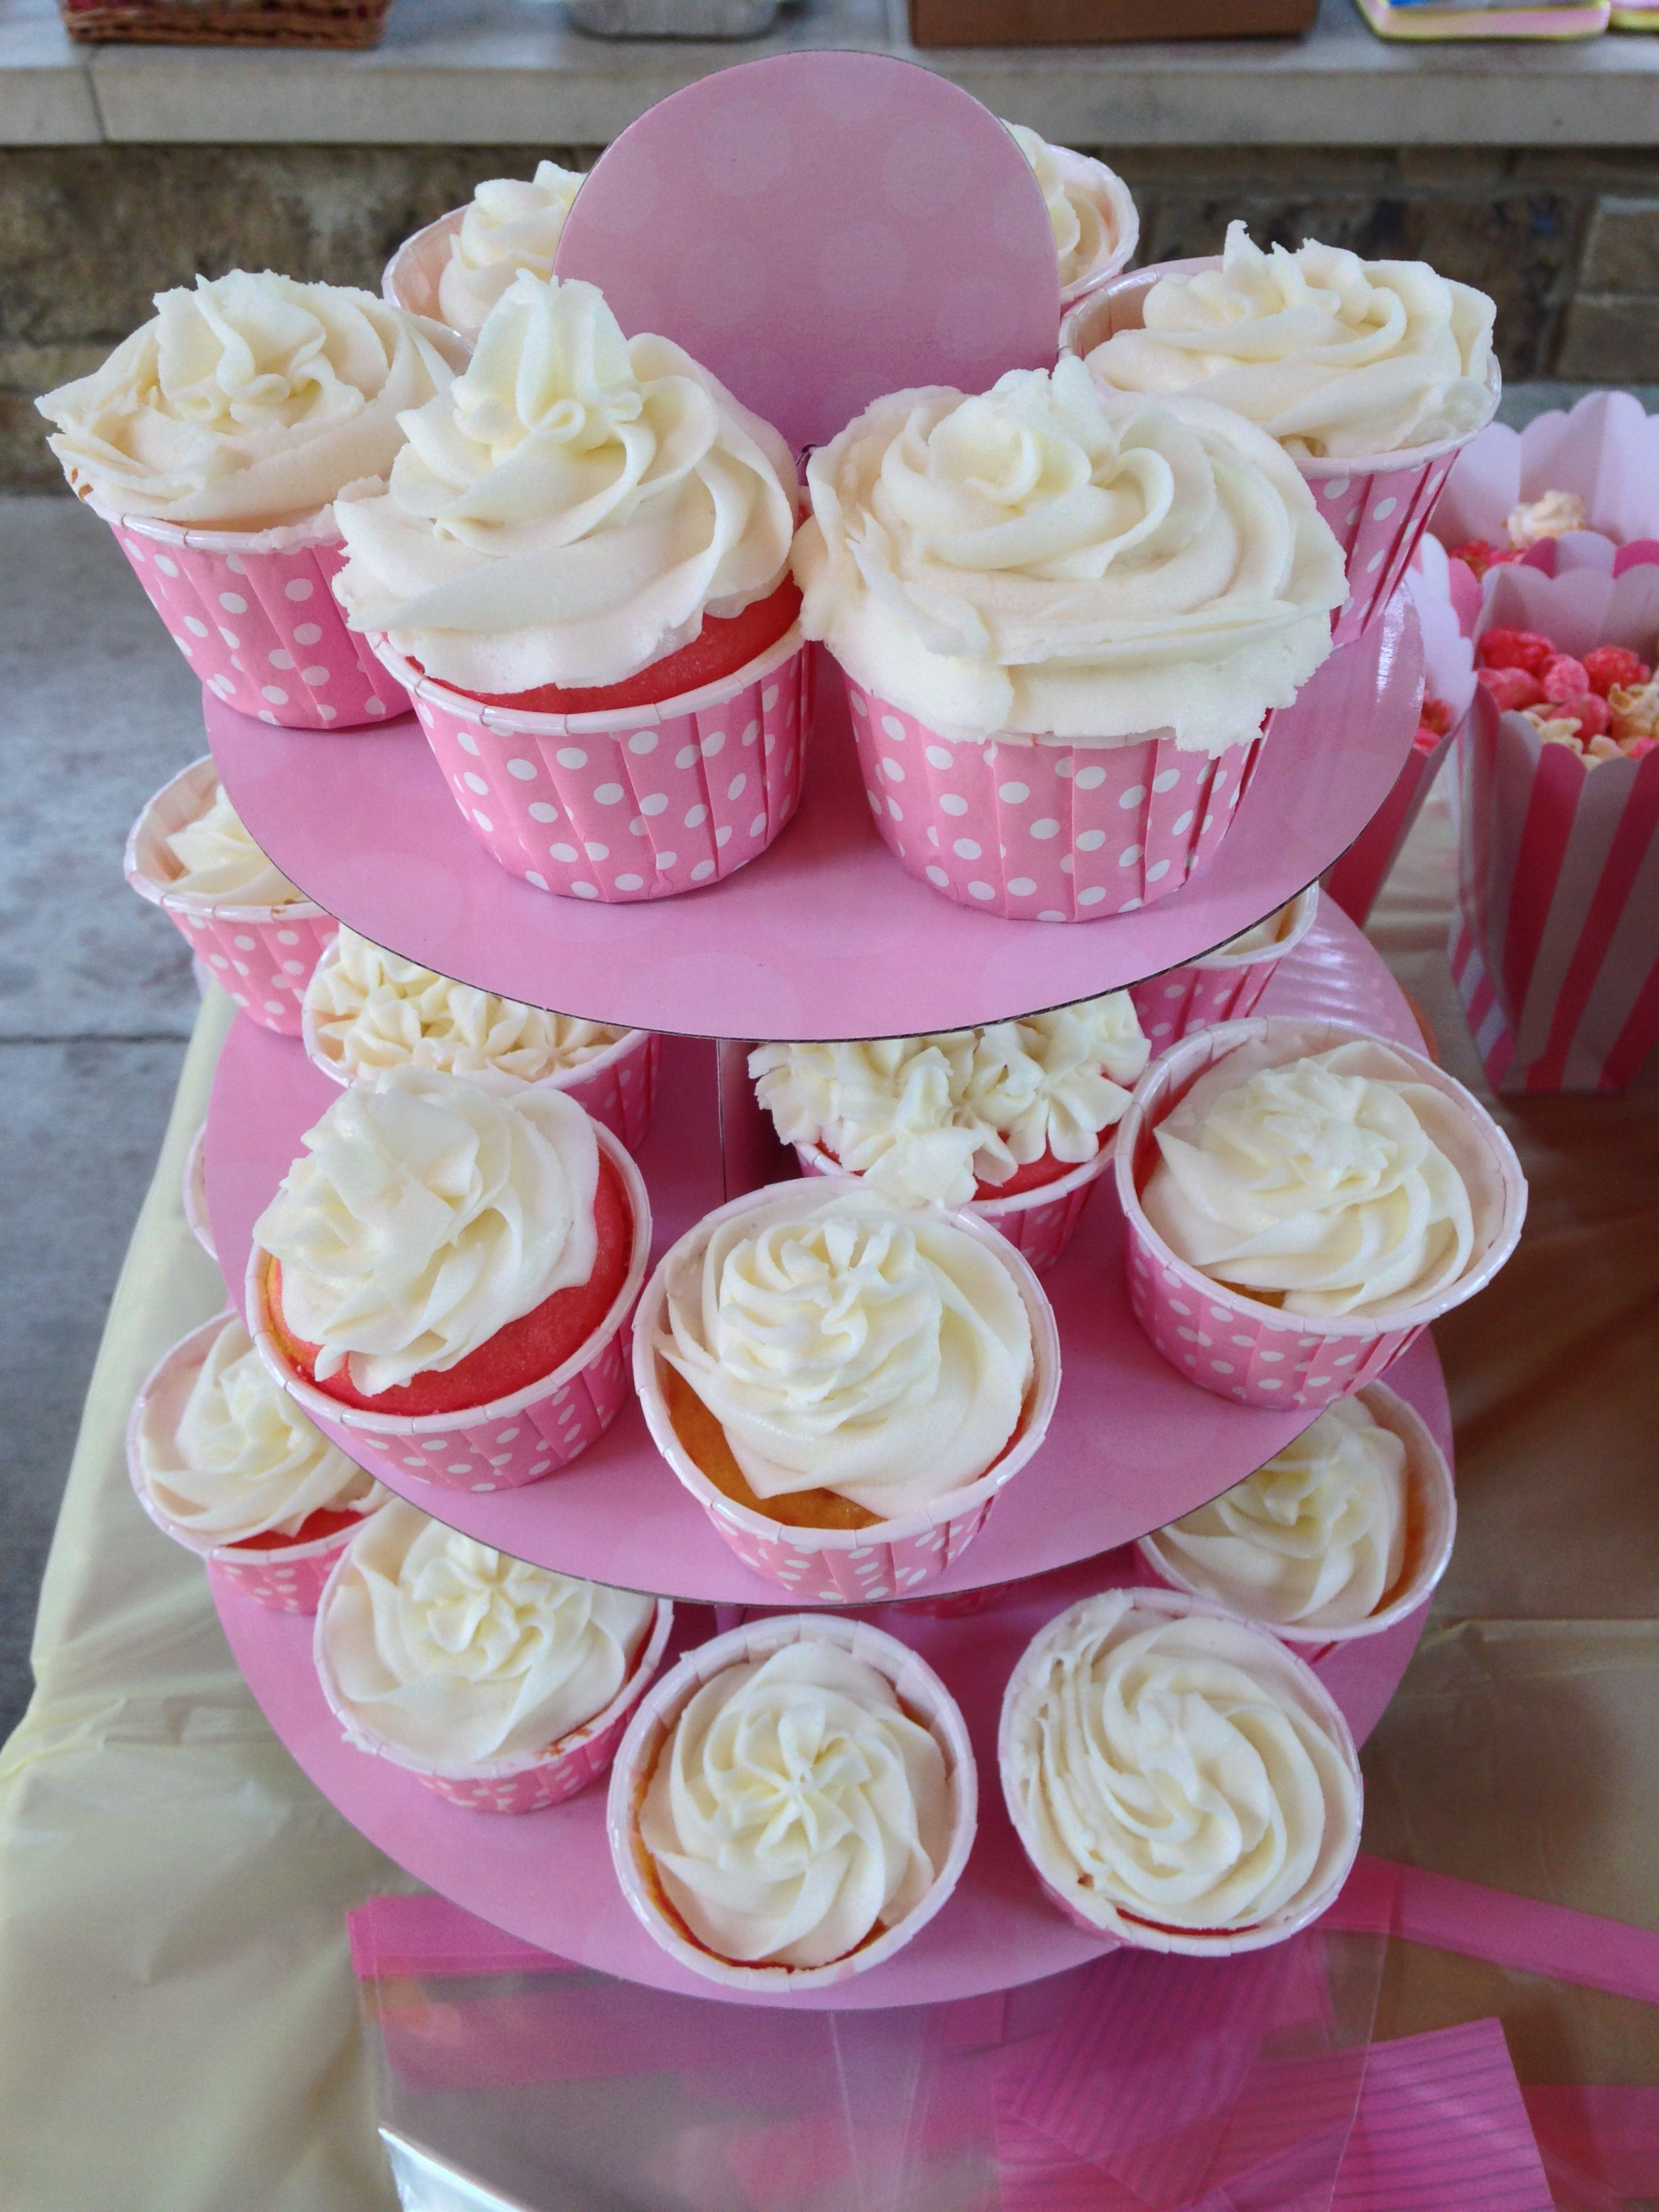 Cute Cups From Hobby Lobby Cupcake Holder From Amazon Prime Cupcake Holder Cute Cups Girl Birthday